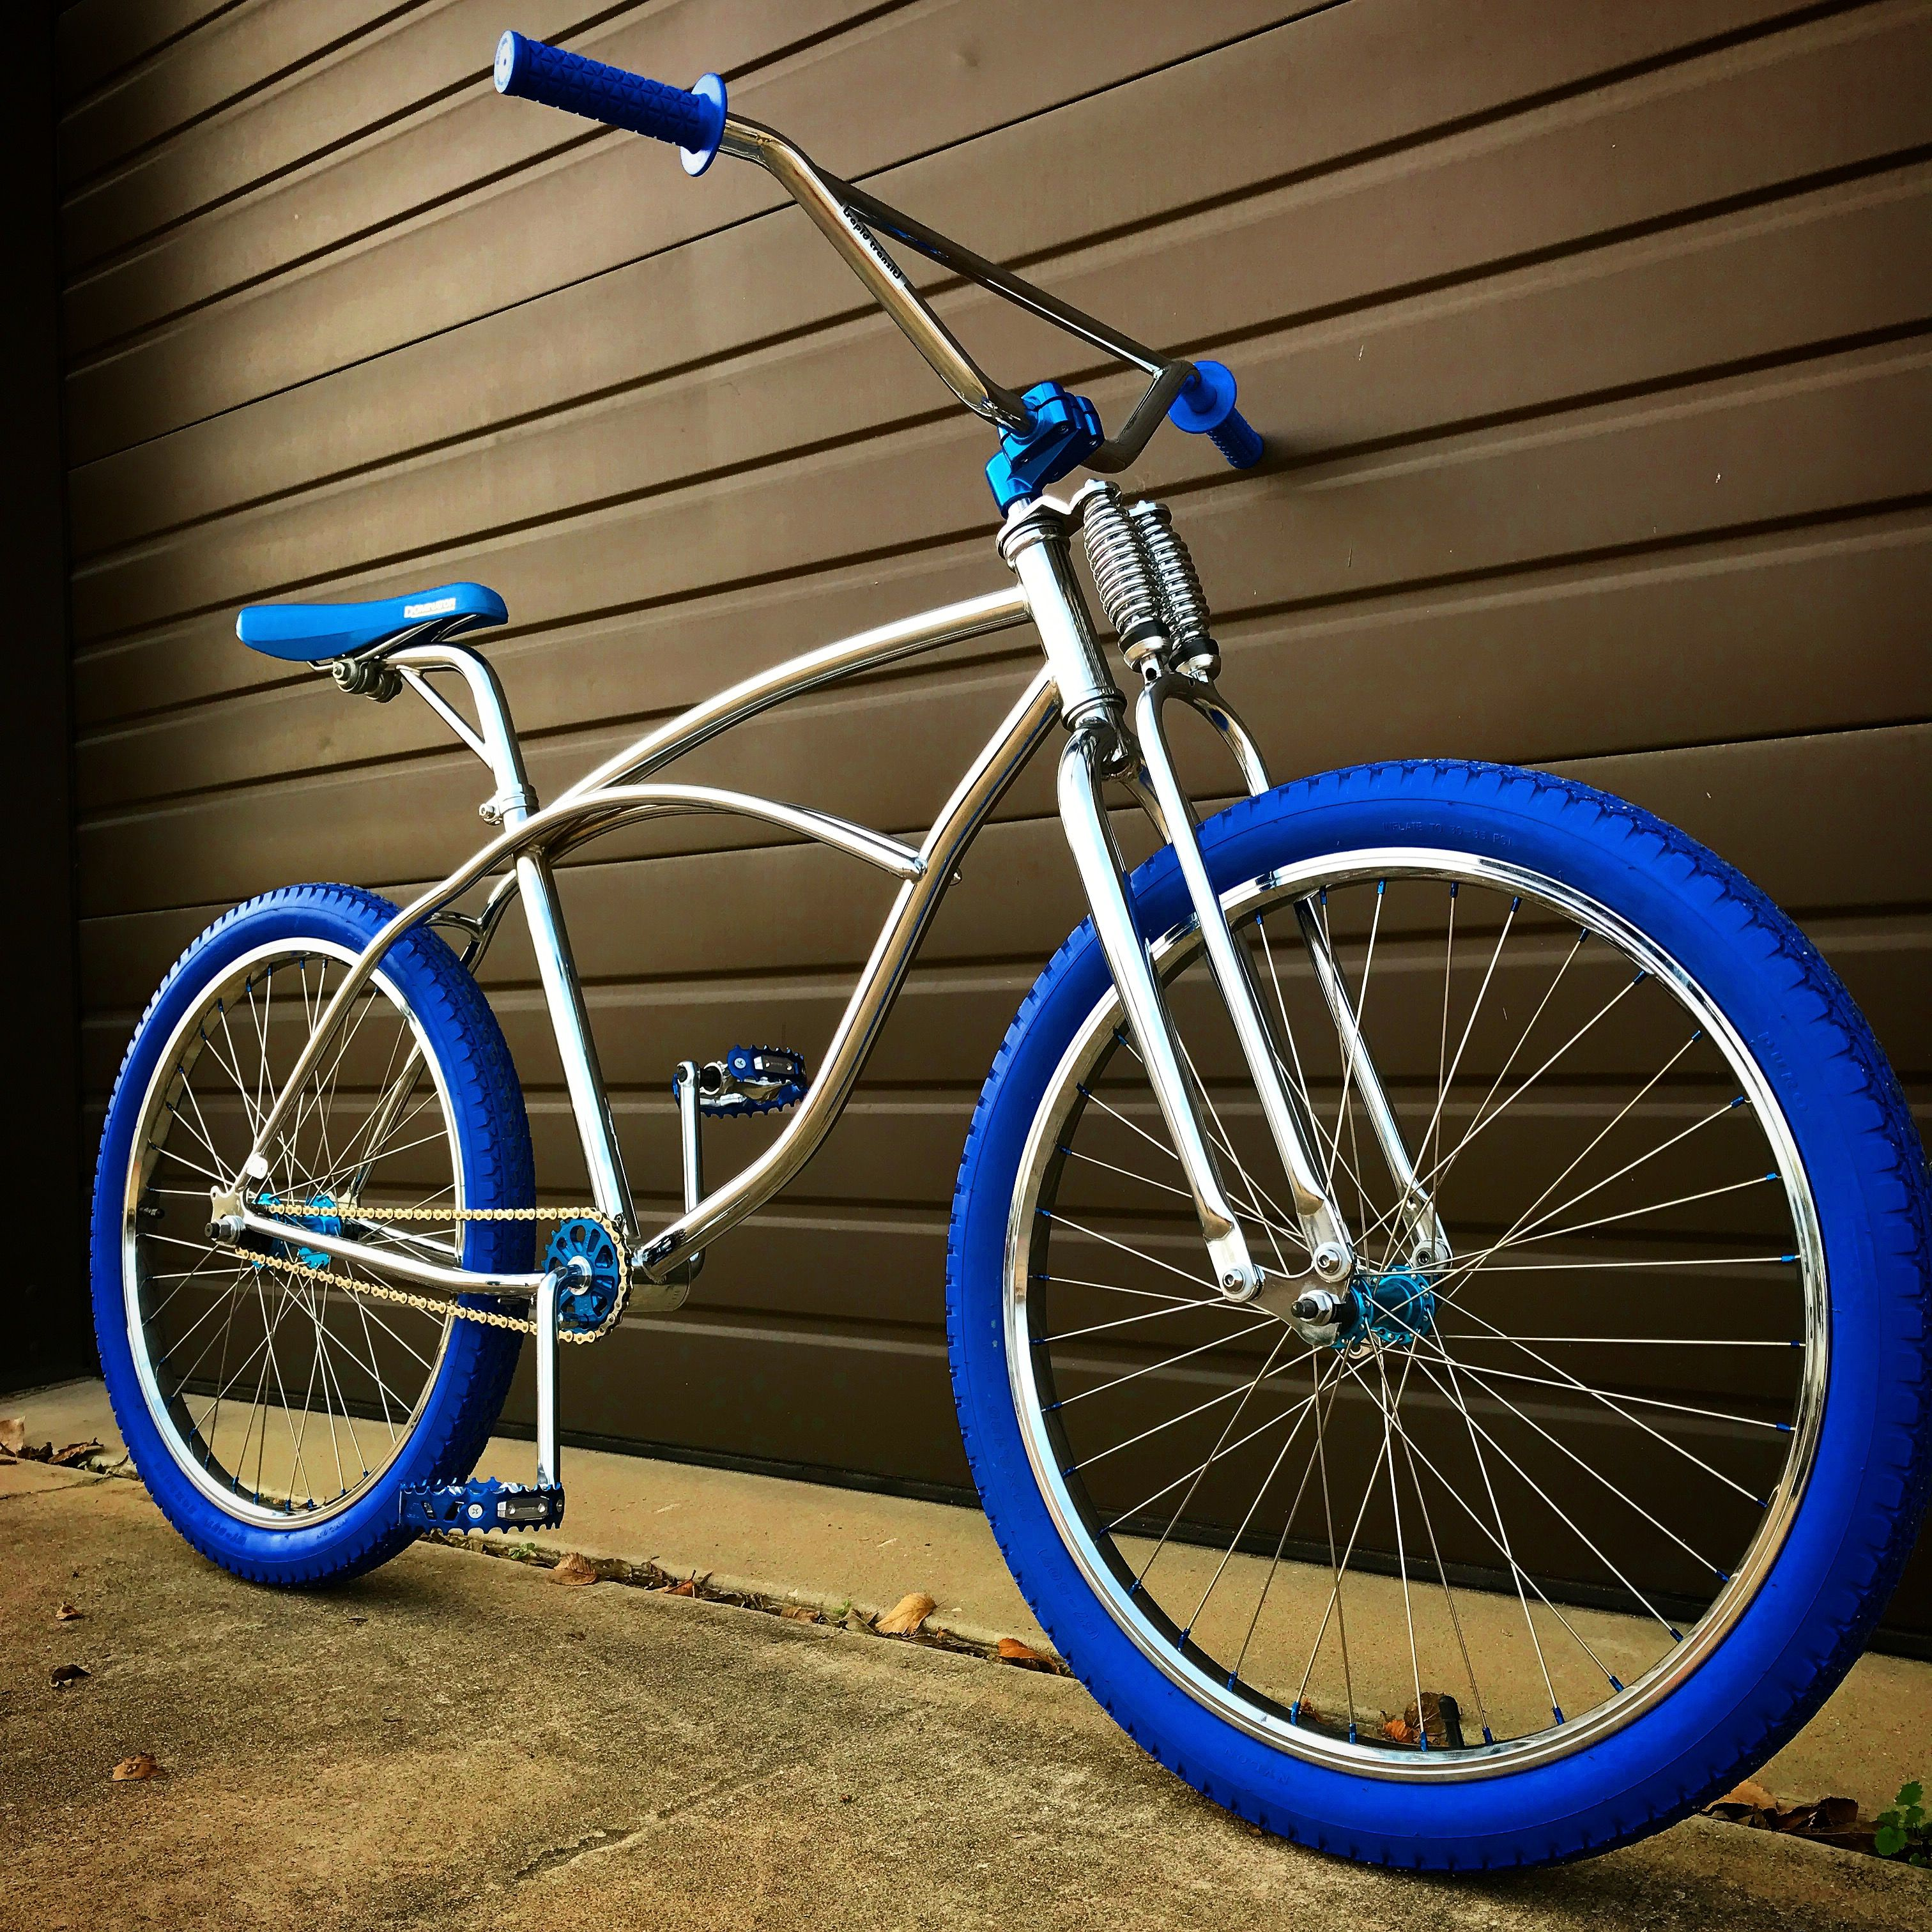 Bmx Cruiser By Zmoon At Clyde James Cycles Order Yours Today Www Clydejamescycles Com Bmx Cruiser Vintage Mountain Bike Lowrider Bicycle